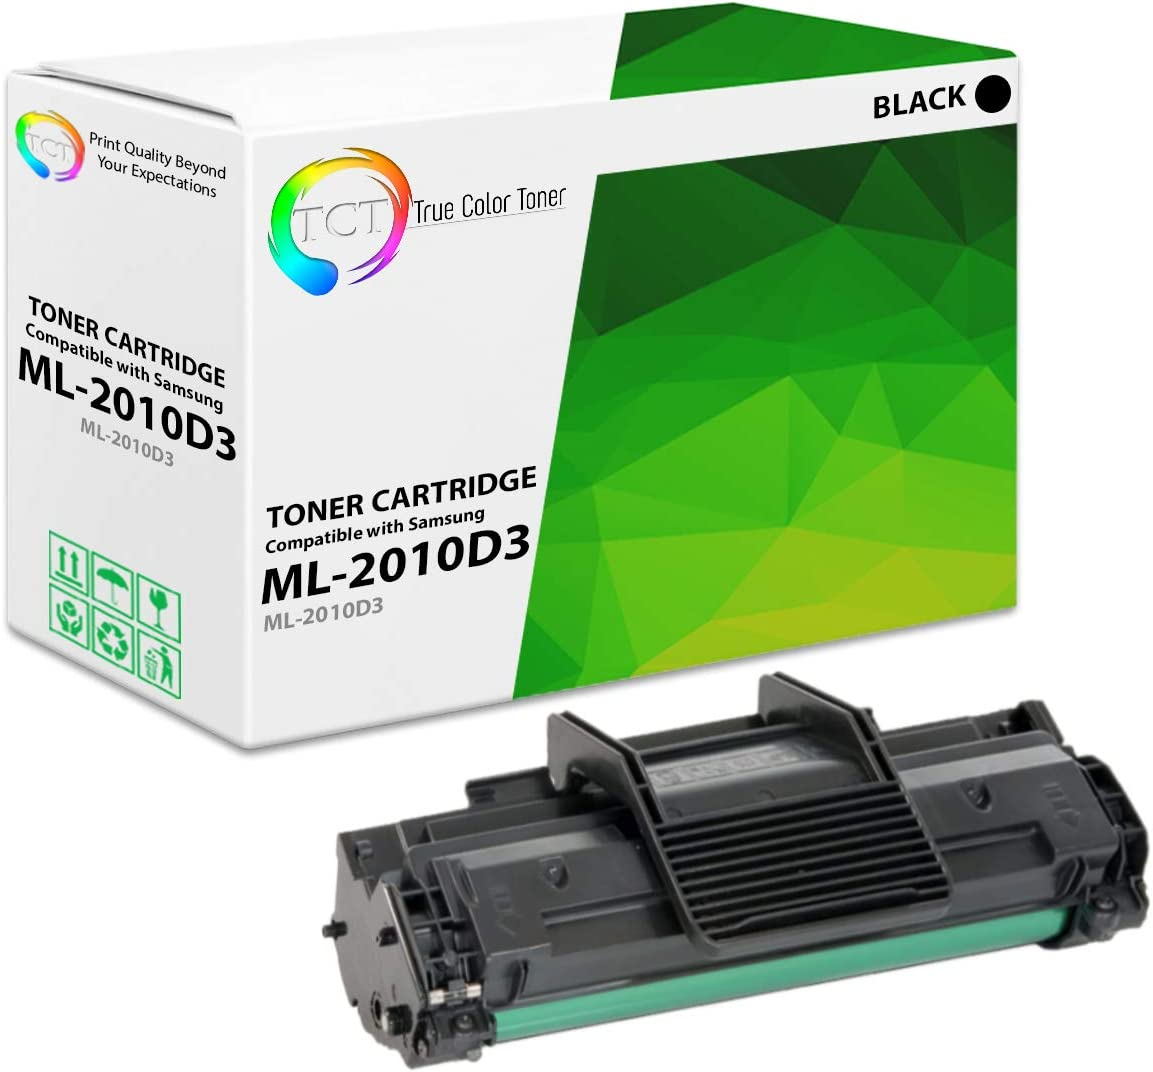 TCT Premium Compatible Toner Cartridge Replacement for Samsung ML-2010D3 Black Works with Samsung ML-2010 ML-2510 ML-2570 ML-2571N, SCX-4521F SCX-4521FG Printers (3,000 Pages)